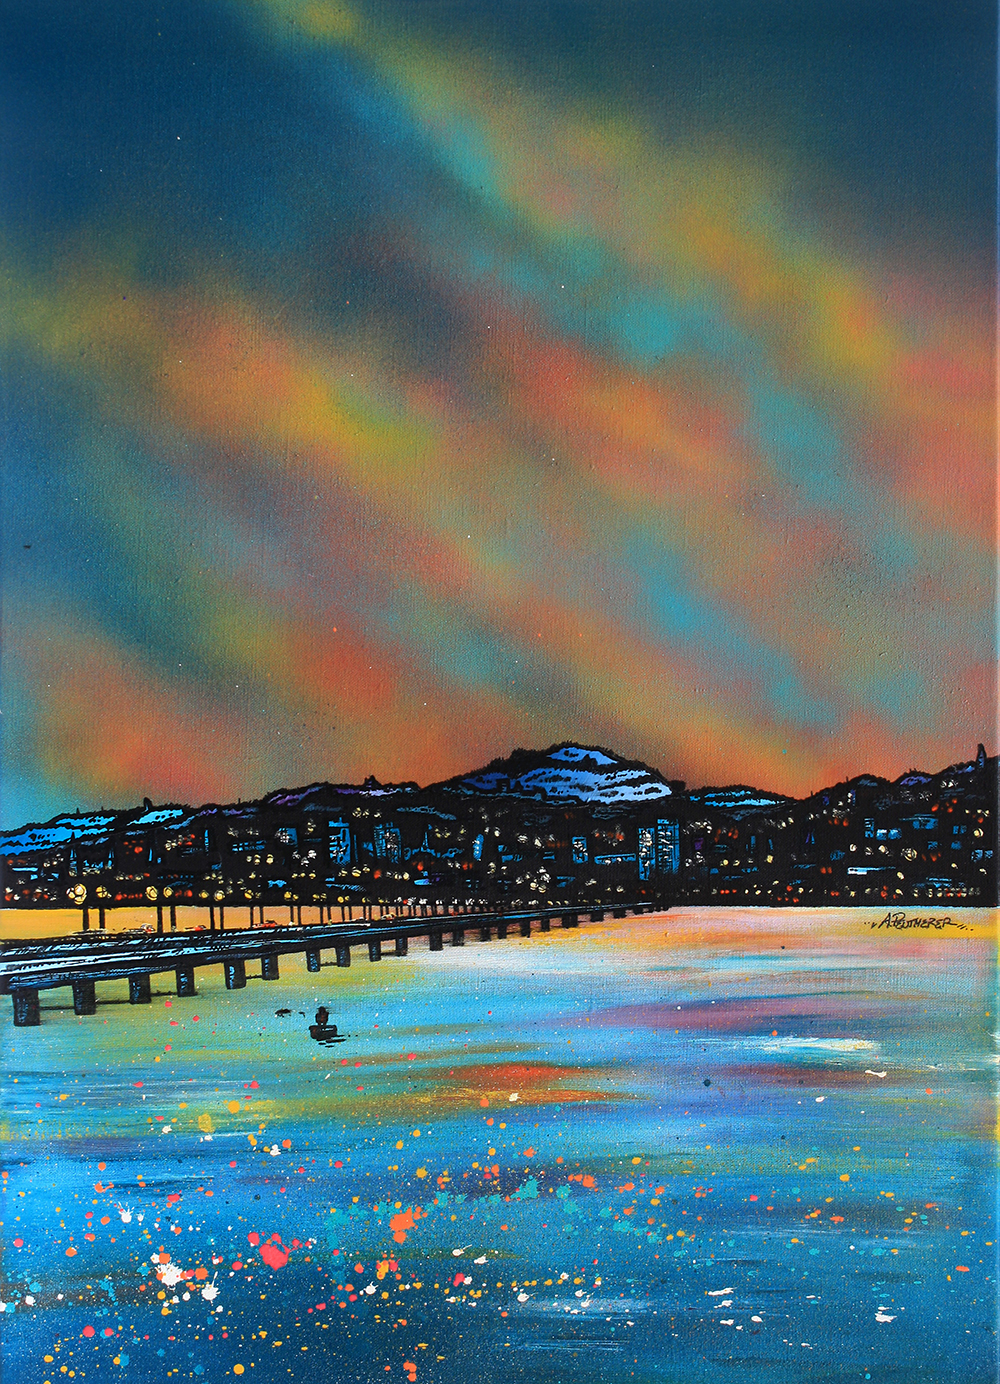 Dundee & The Tay bridge, Scotland. Painting and prints by Scottish contemporary landscape artist A Peutherer.